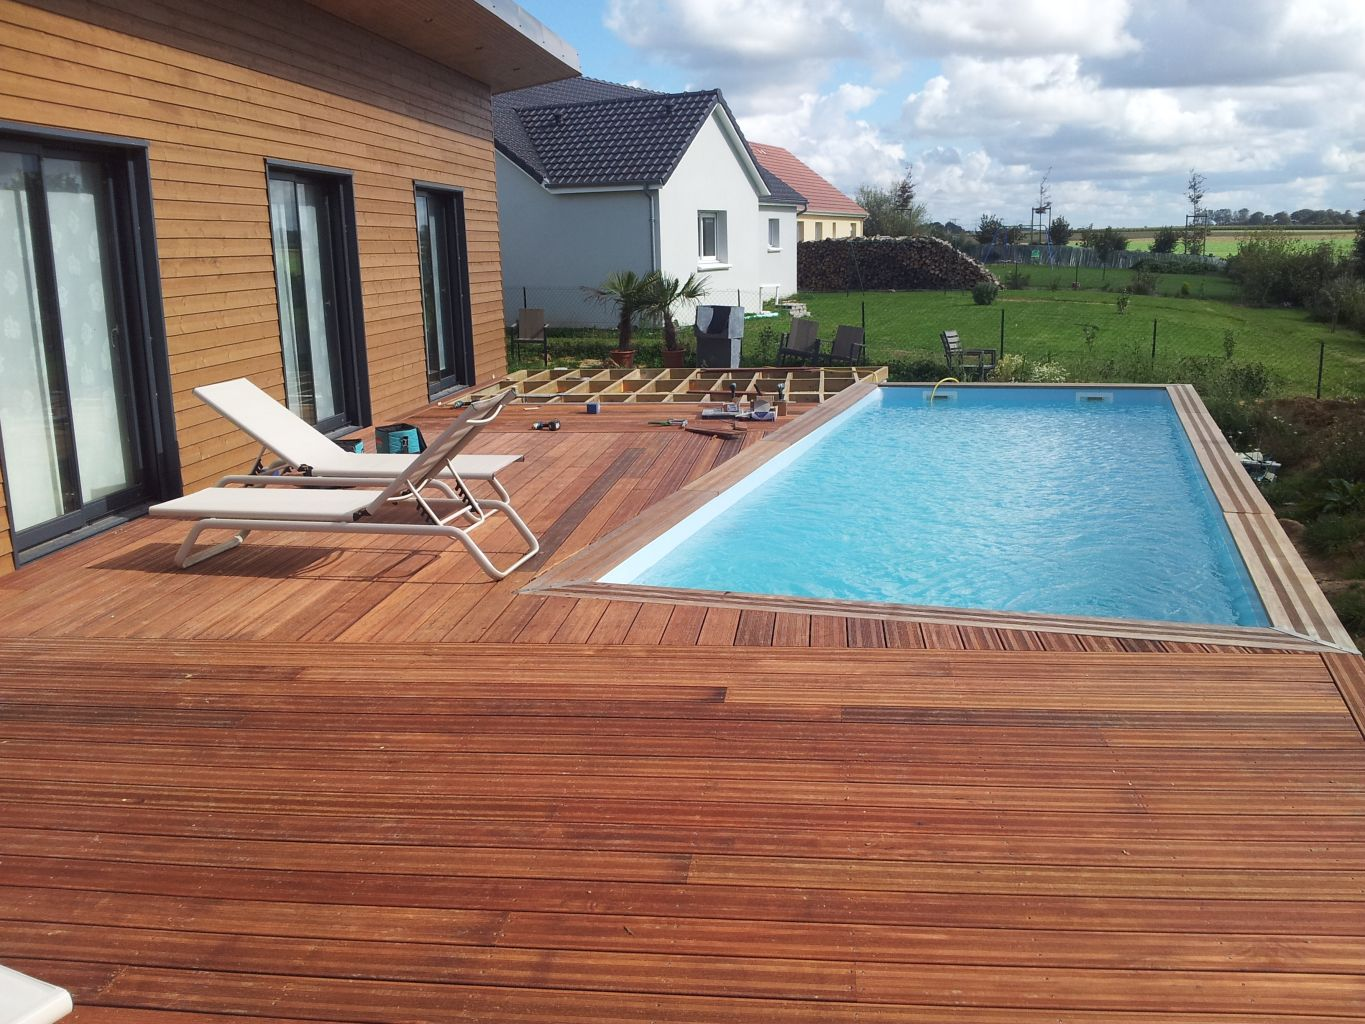 Terrasse avec piscine berneval le grand 76370 djsl bois for Photo piscine